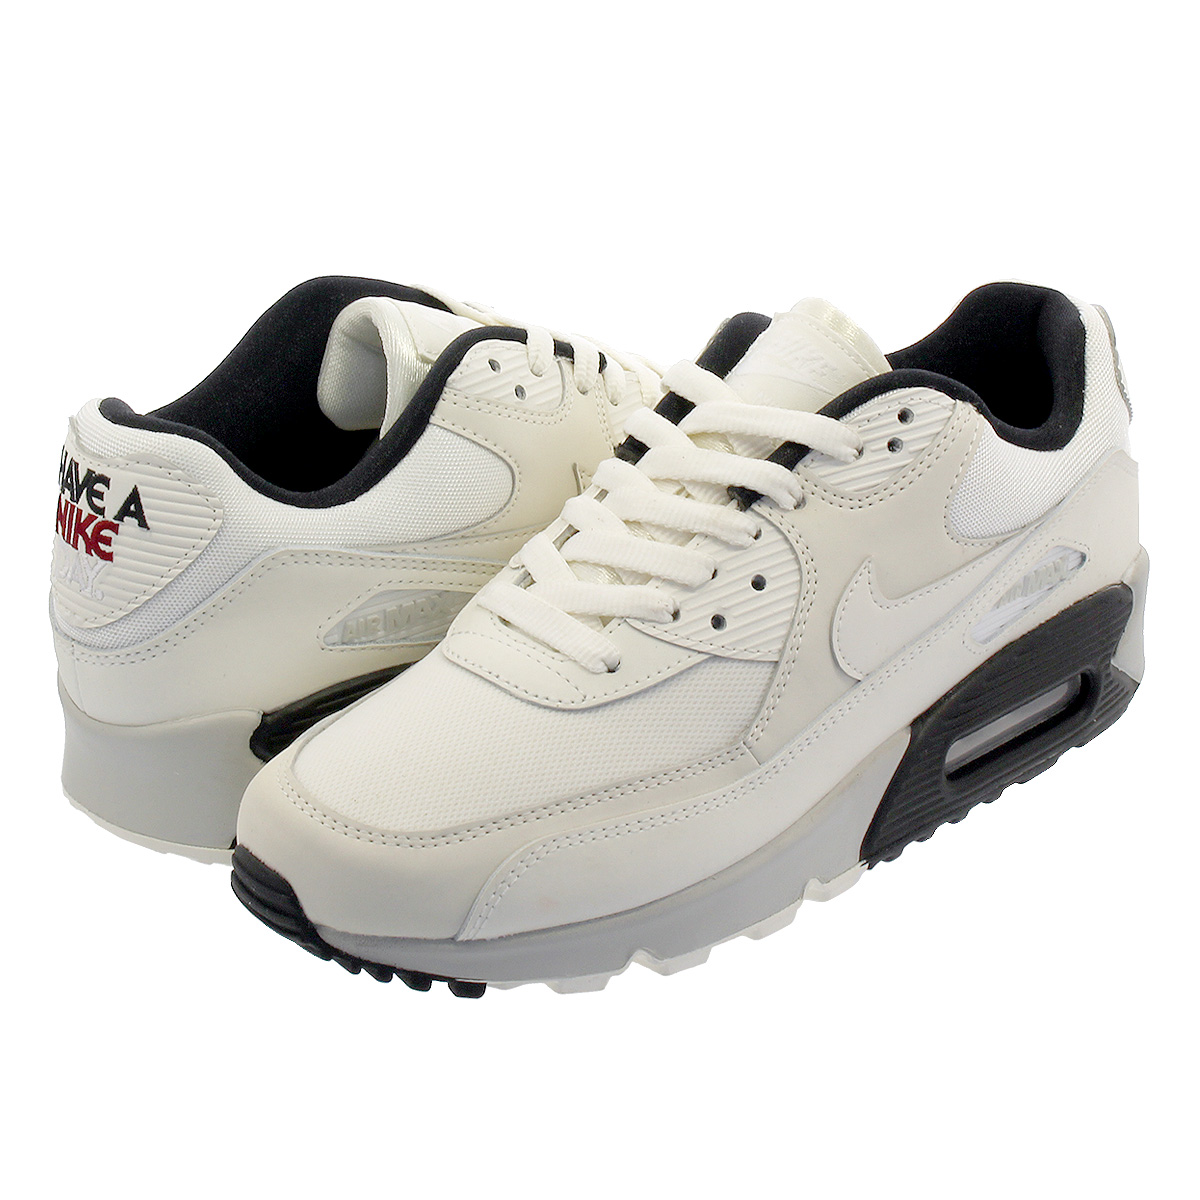 new products d7365 1a228 NIKE WMNS AIR MAX 90 SE Nike women Air Max 90 SE PALE IVORY/BLACK/TEAM  CRIMSON/PALE IVORY 881,105-102